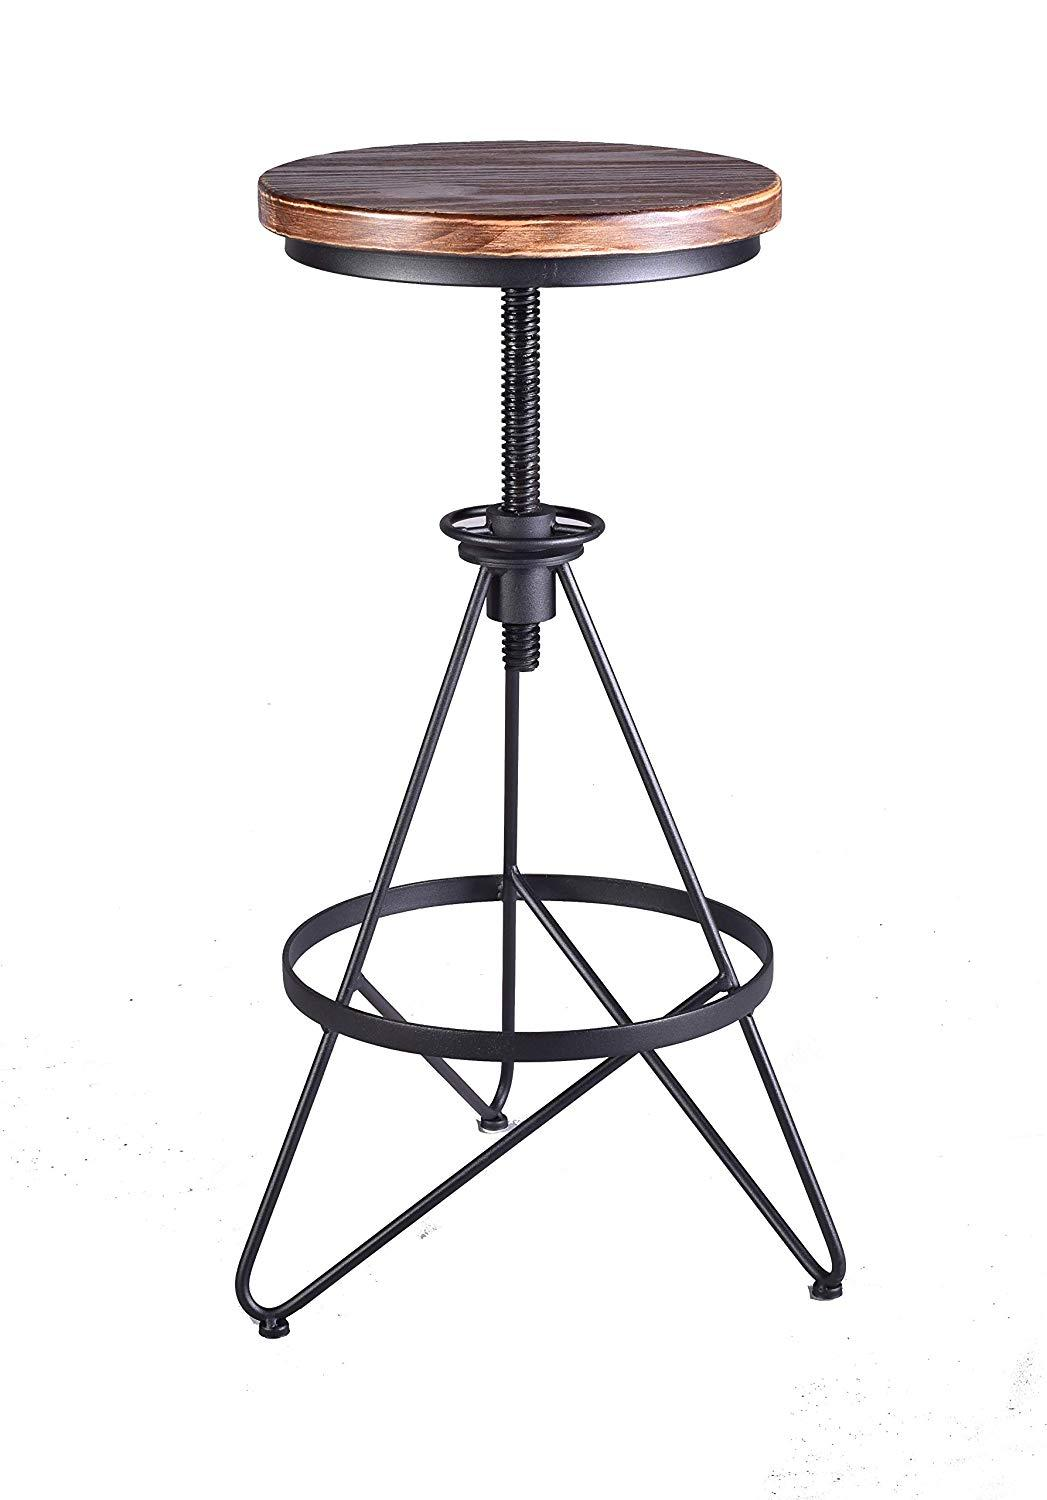 Vintage Industrial Adjustable Height Swivel Bar Stools Counter Pub Height Stools Bar Chairs